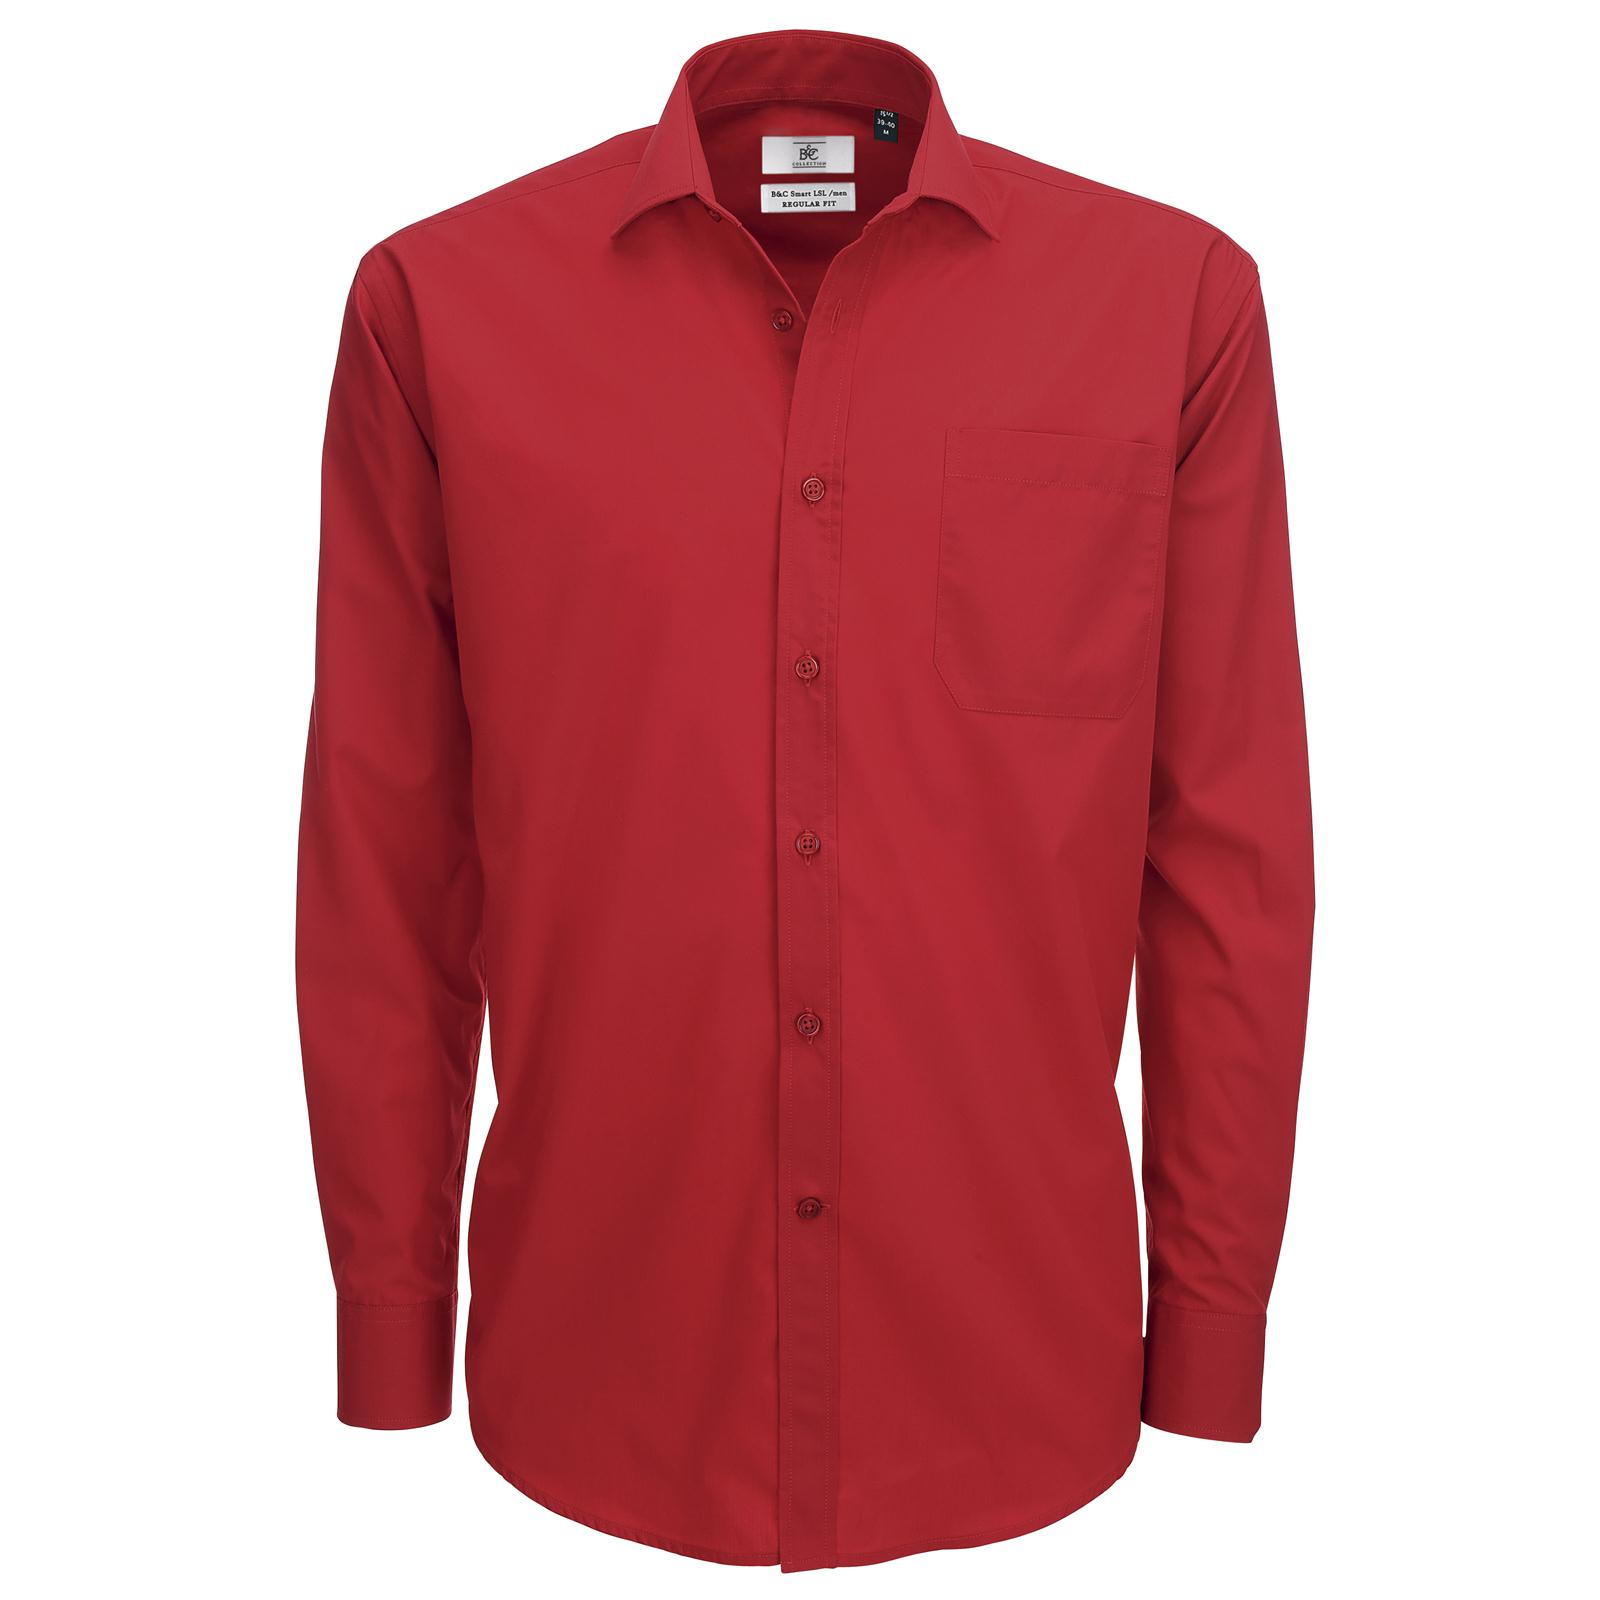 New B&C Mens Smart Work Long Sleeve Polycotton Shirt in 5 Colours ...